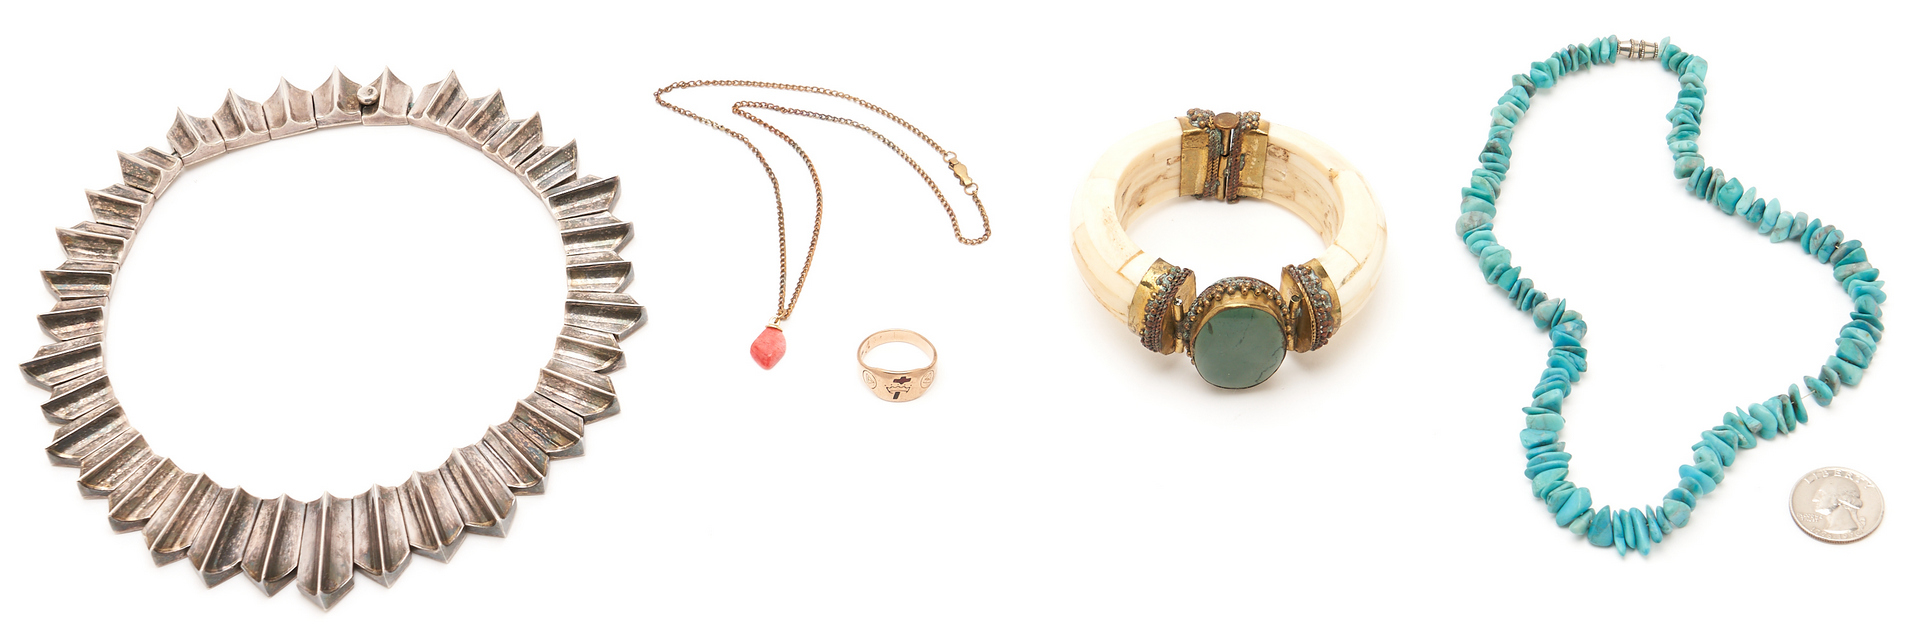 Lot 1220: 5 Assembled Jewelry items, incl. Sterling & Turquoise